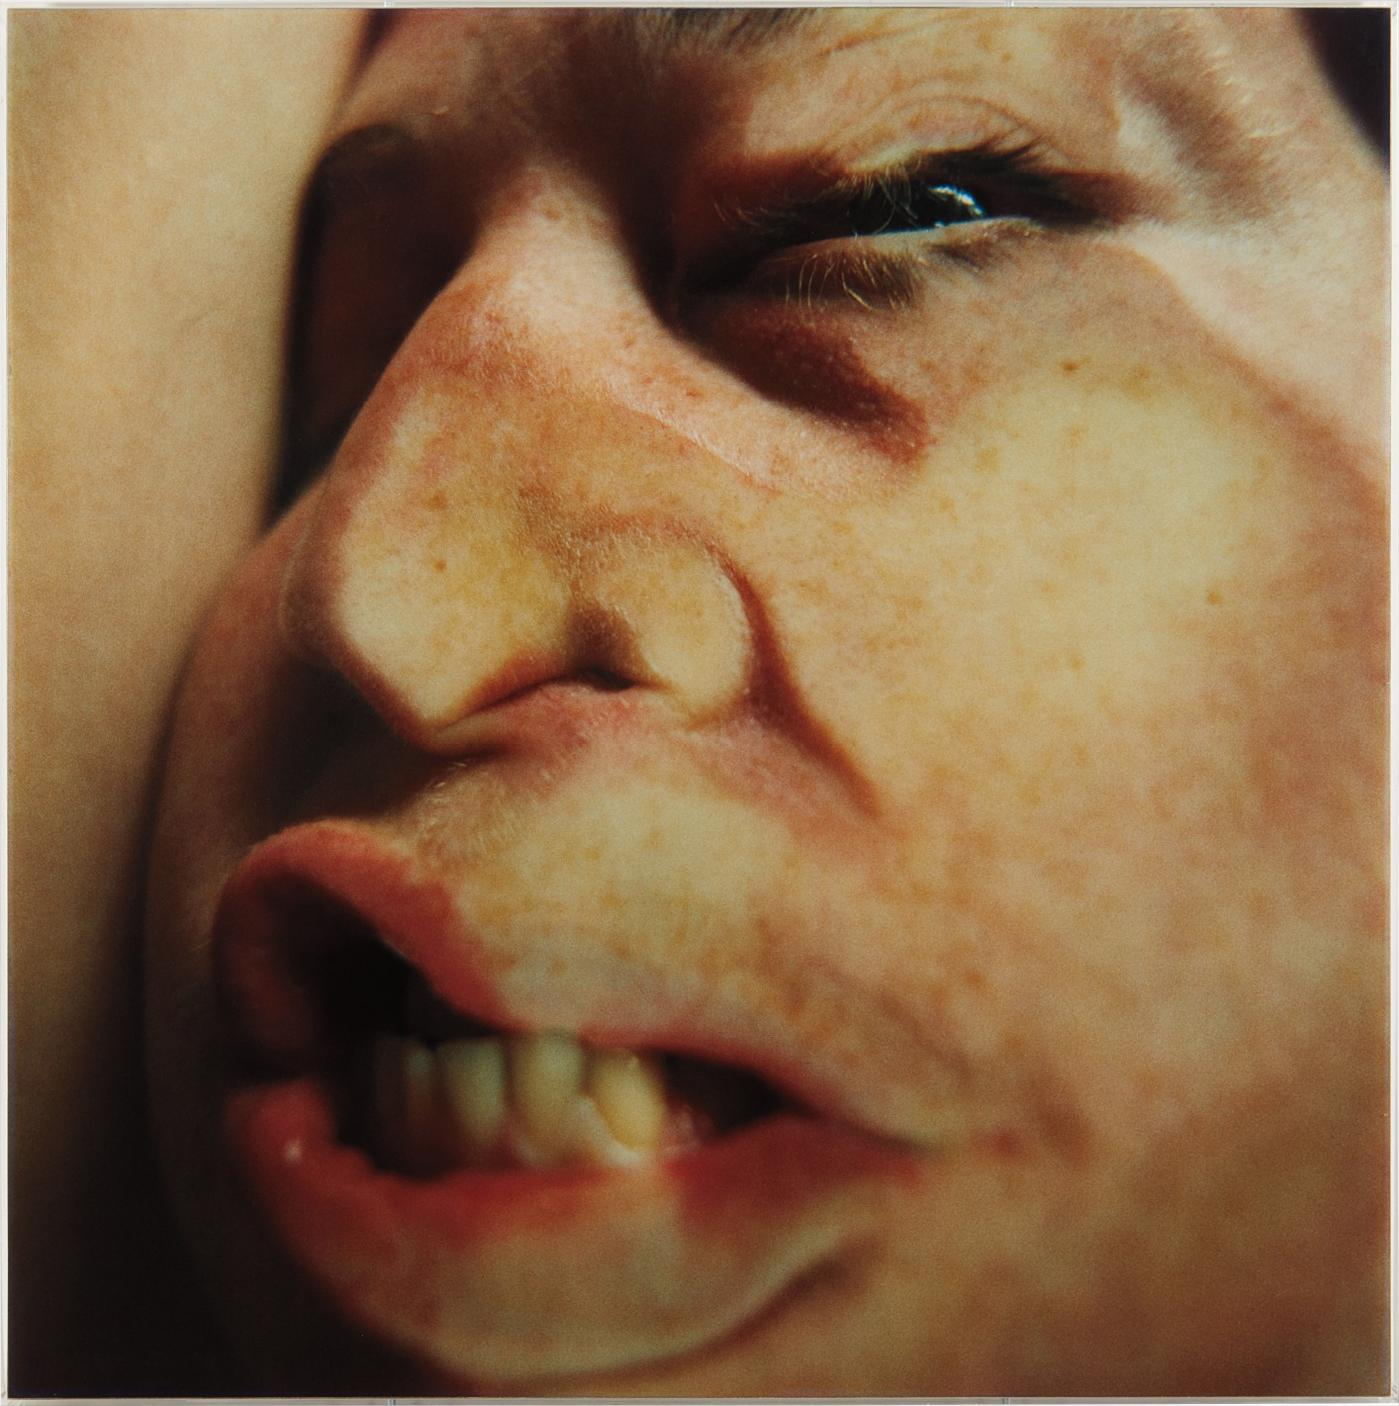 Glen Luchford And Jenny Saville - Closed Contact #16-1996